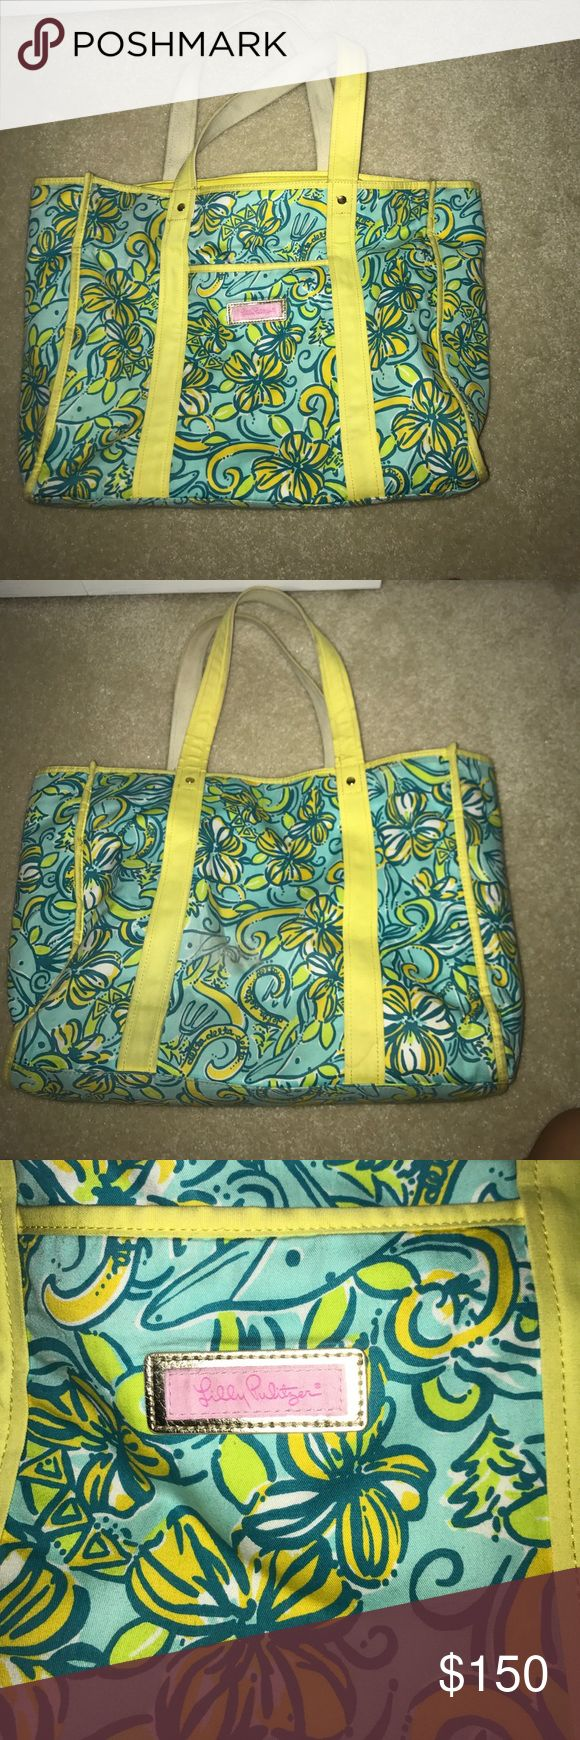 Lilly Pulitzer Tote Bag Lilly Pulitzer sorority collection Tri Delta **DISCONTINUED** Lilly Pulitzer Bags Totes